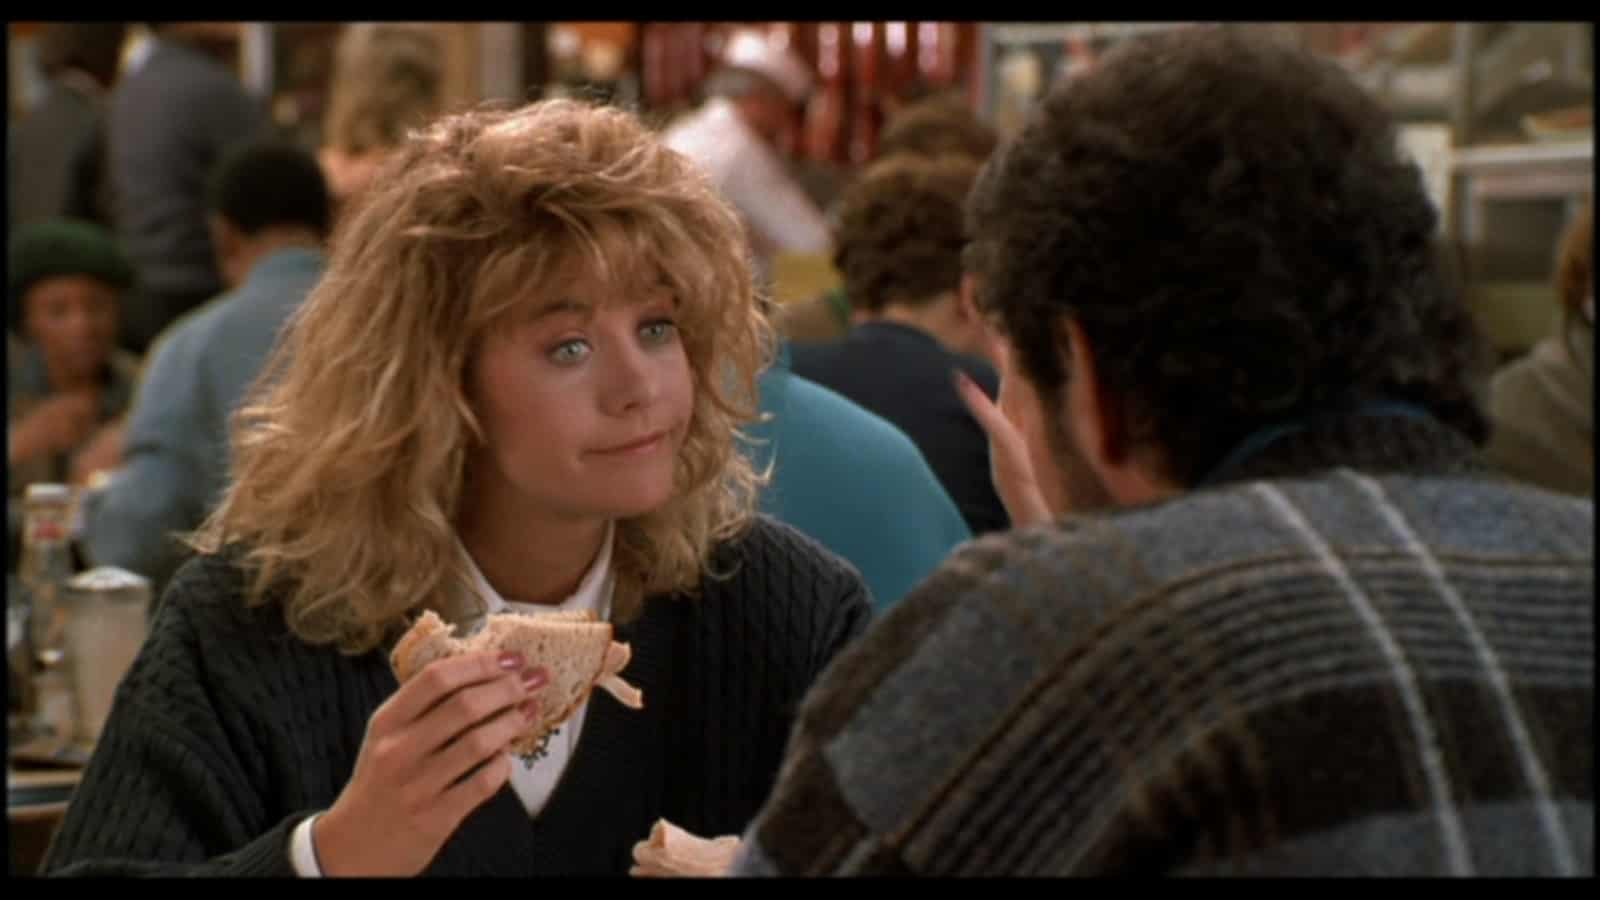 essay on when harry met sally Support this channel: http://patreoncom/lftscreenplay lfts on facebook: https ://googl/82wlmn follow me at: http://twittercom/michaeltuckerla when harry me.